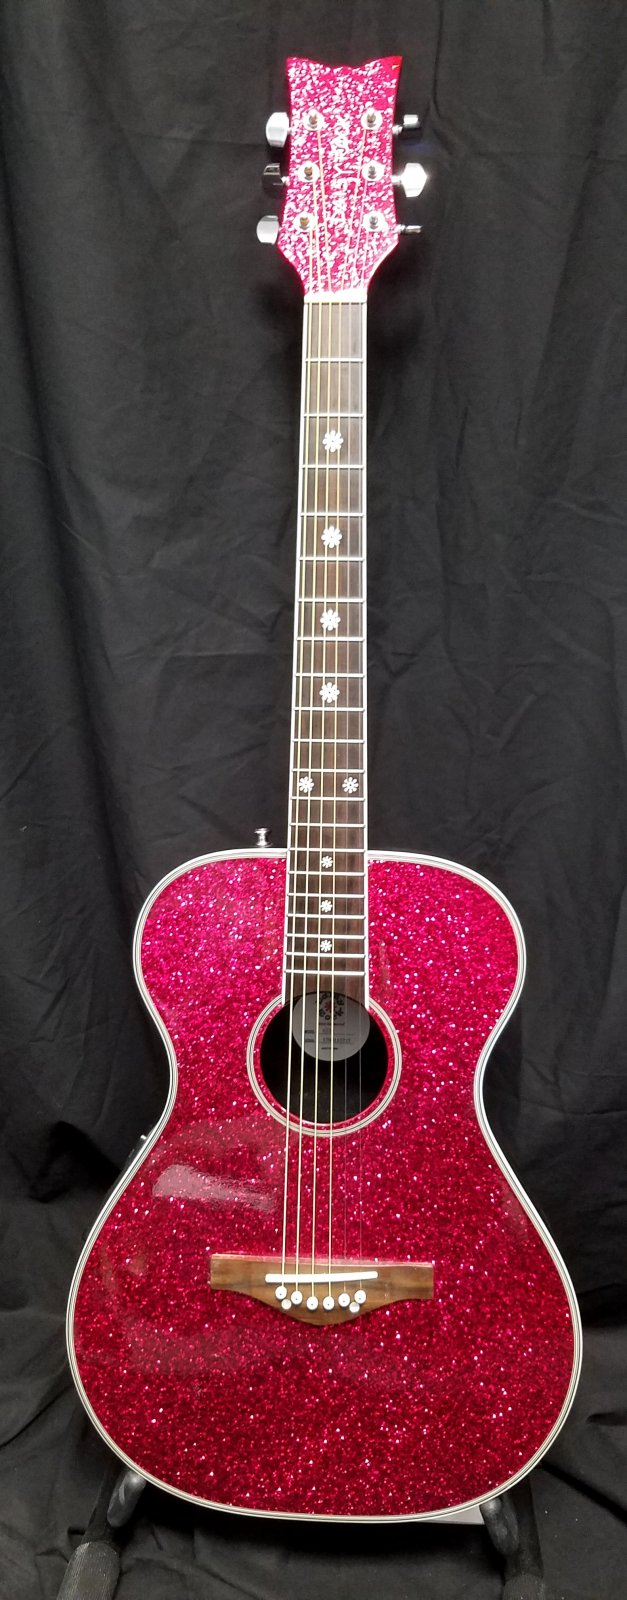 Used Daisy Rock Pixie Acoustic Guitar Hot Pink Sparkle